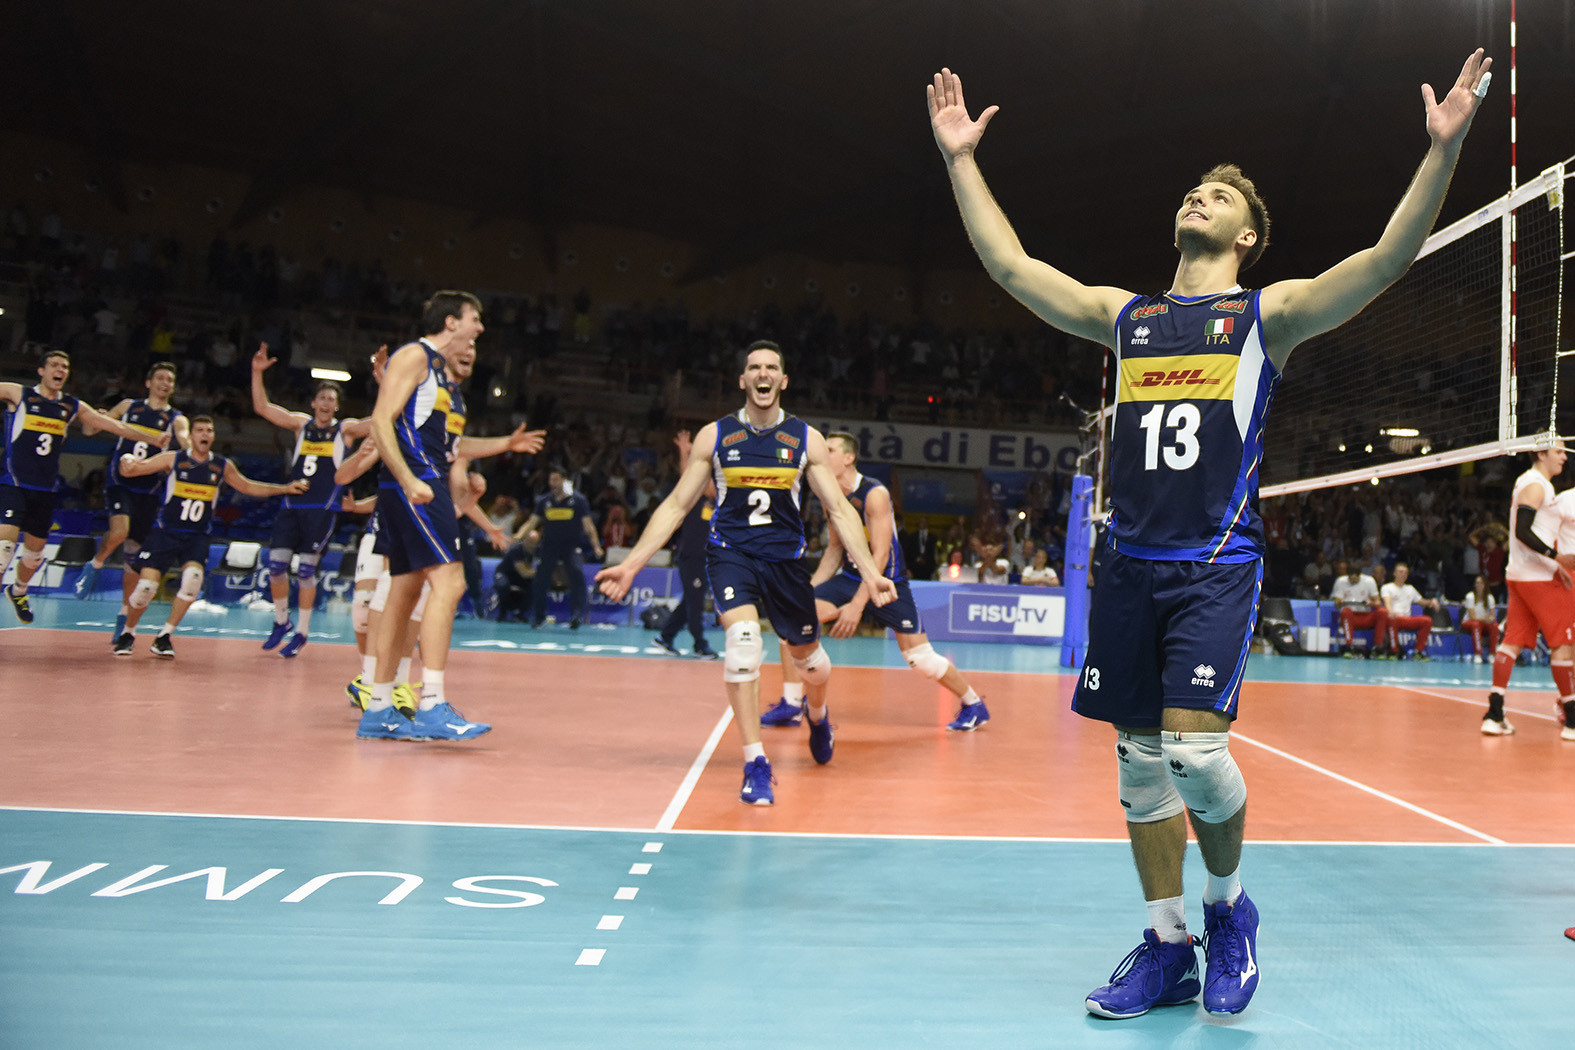 Italy thrilled the fans at the PalaSele in Eboli as they won the men's volleyball final ©Naples 2019